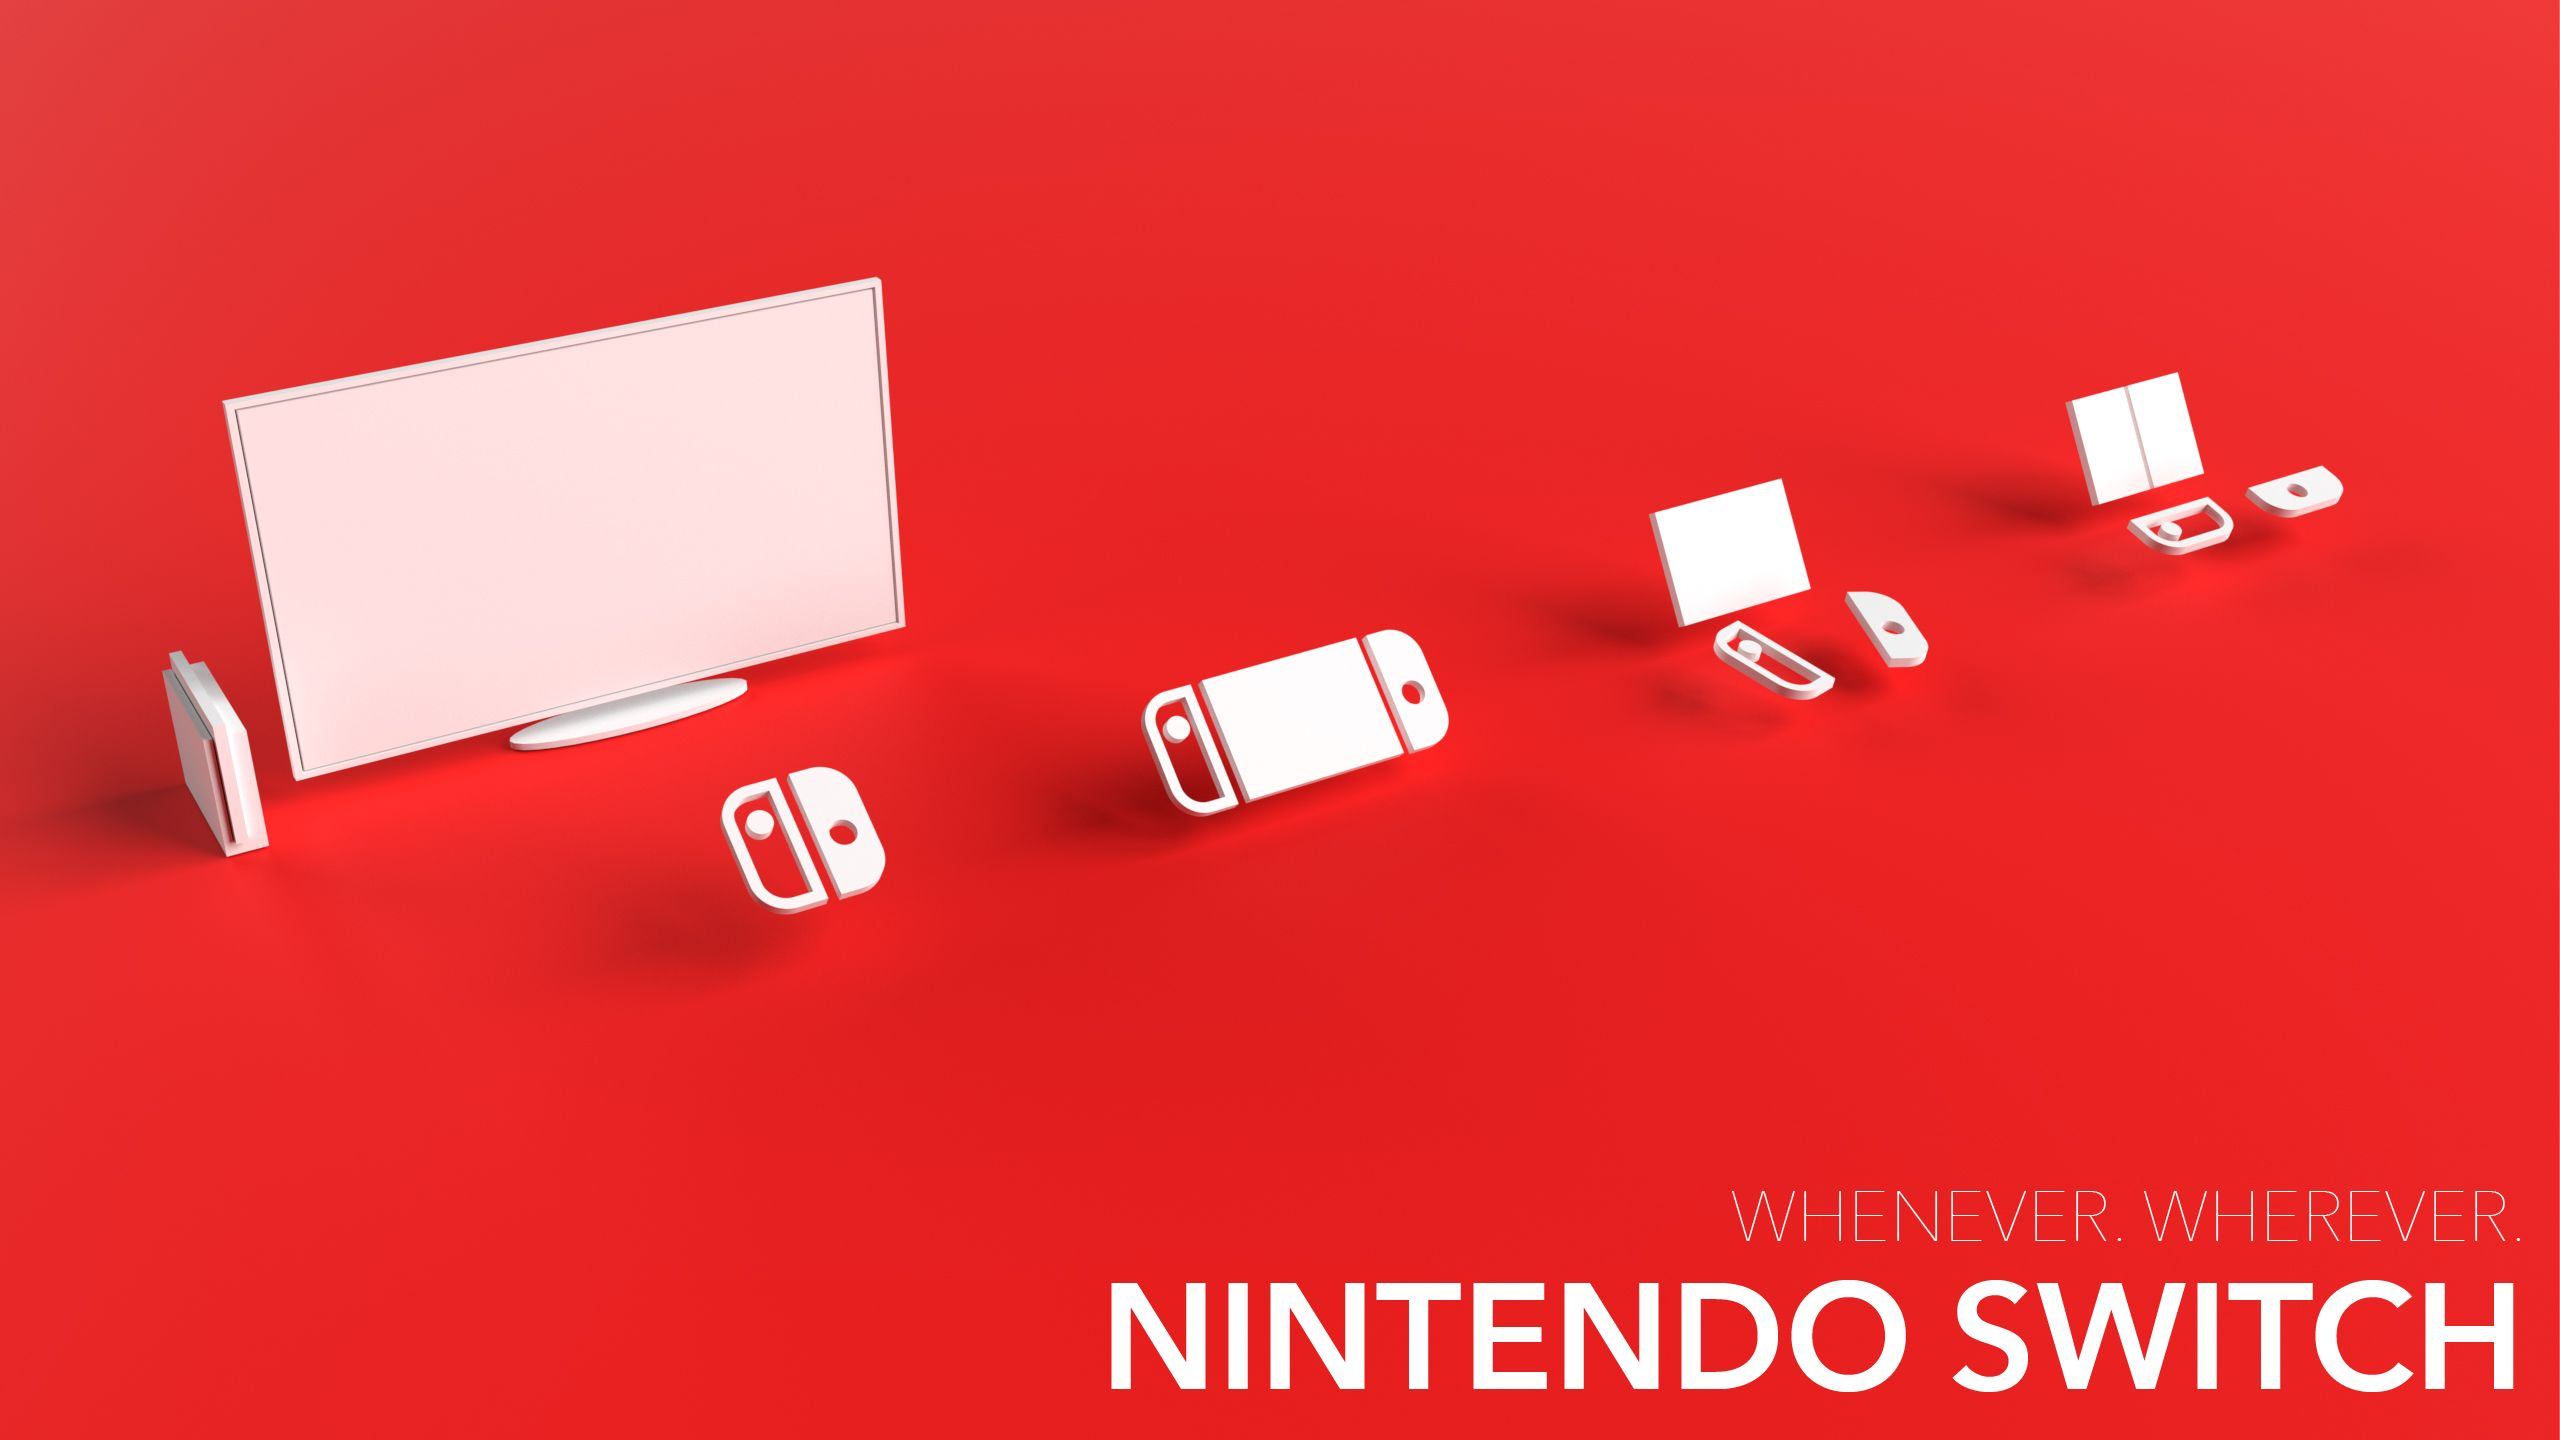 Nintendo Logo Wallpapers Top Free Nintendo Logo Backgrounds Wallpaperaccess